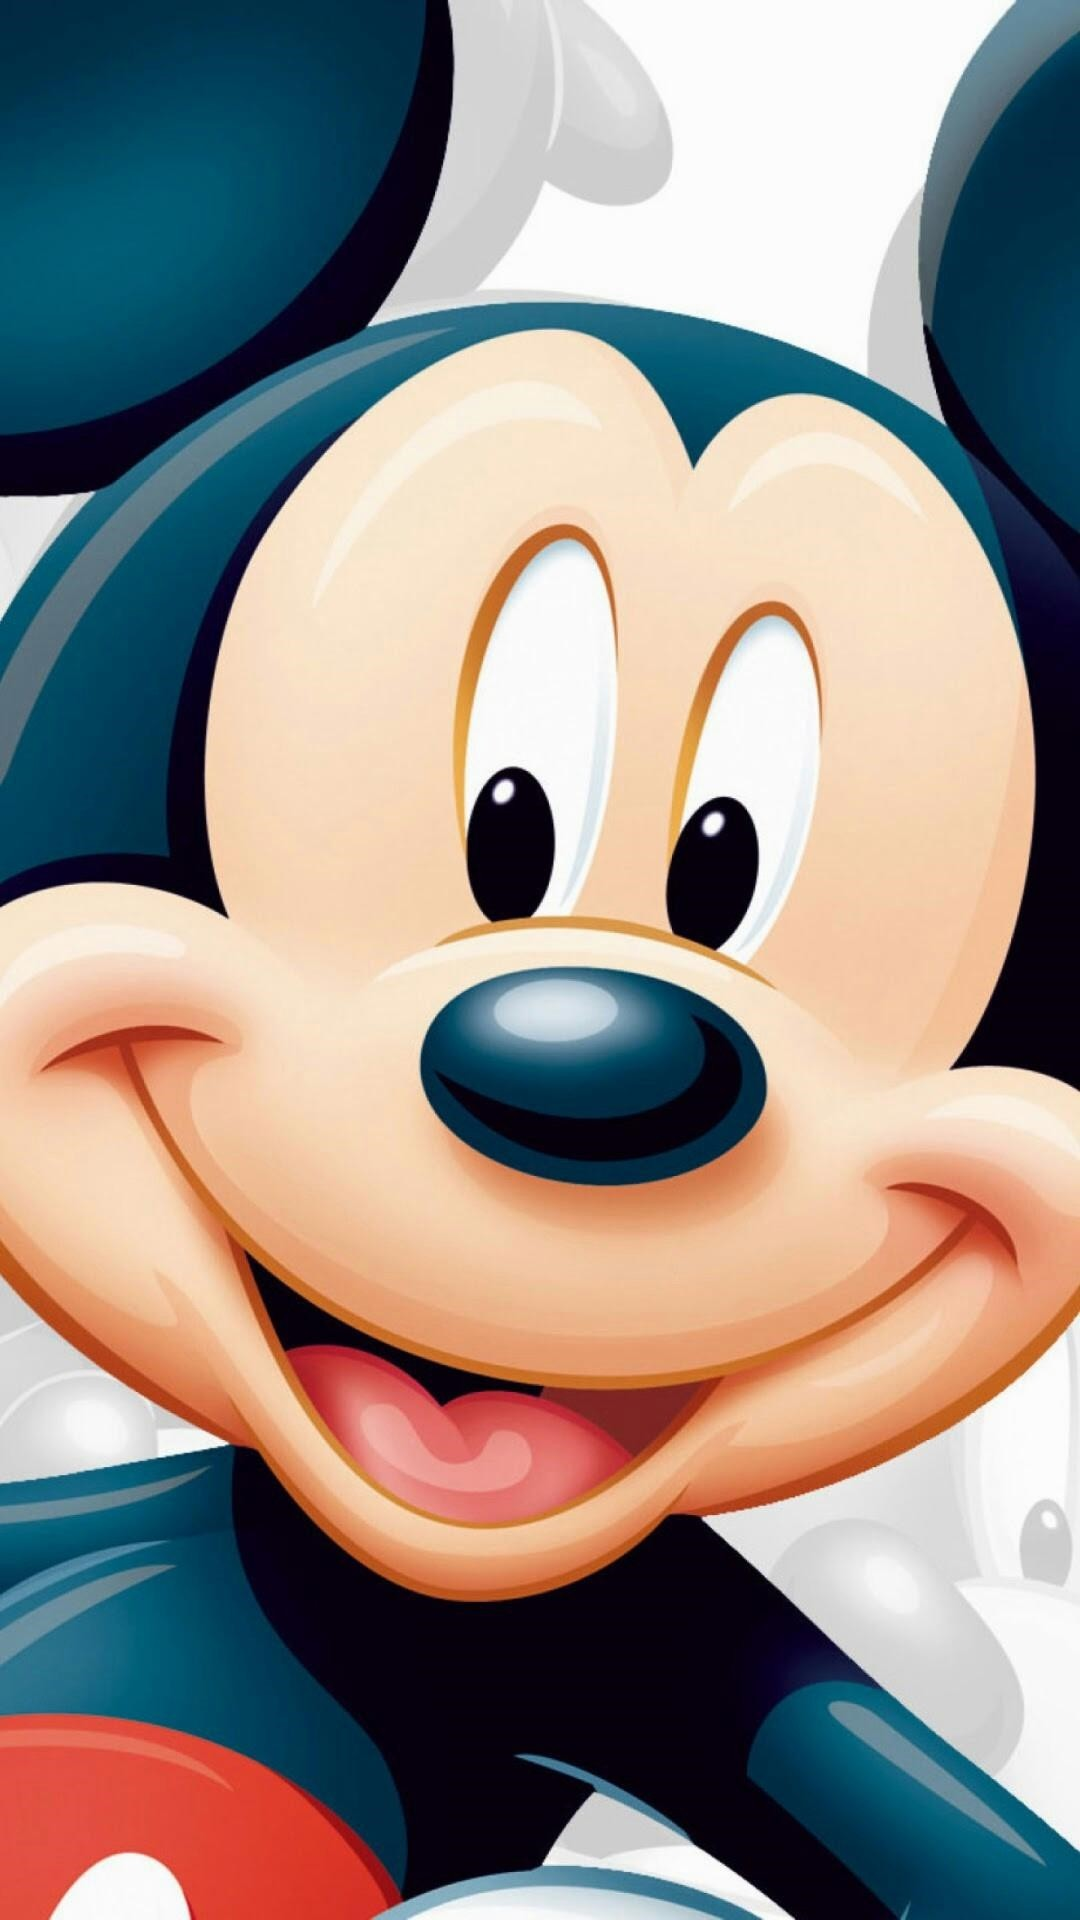 Disney wallpaper for android